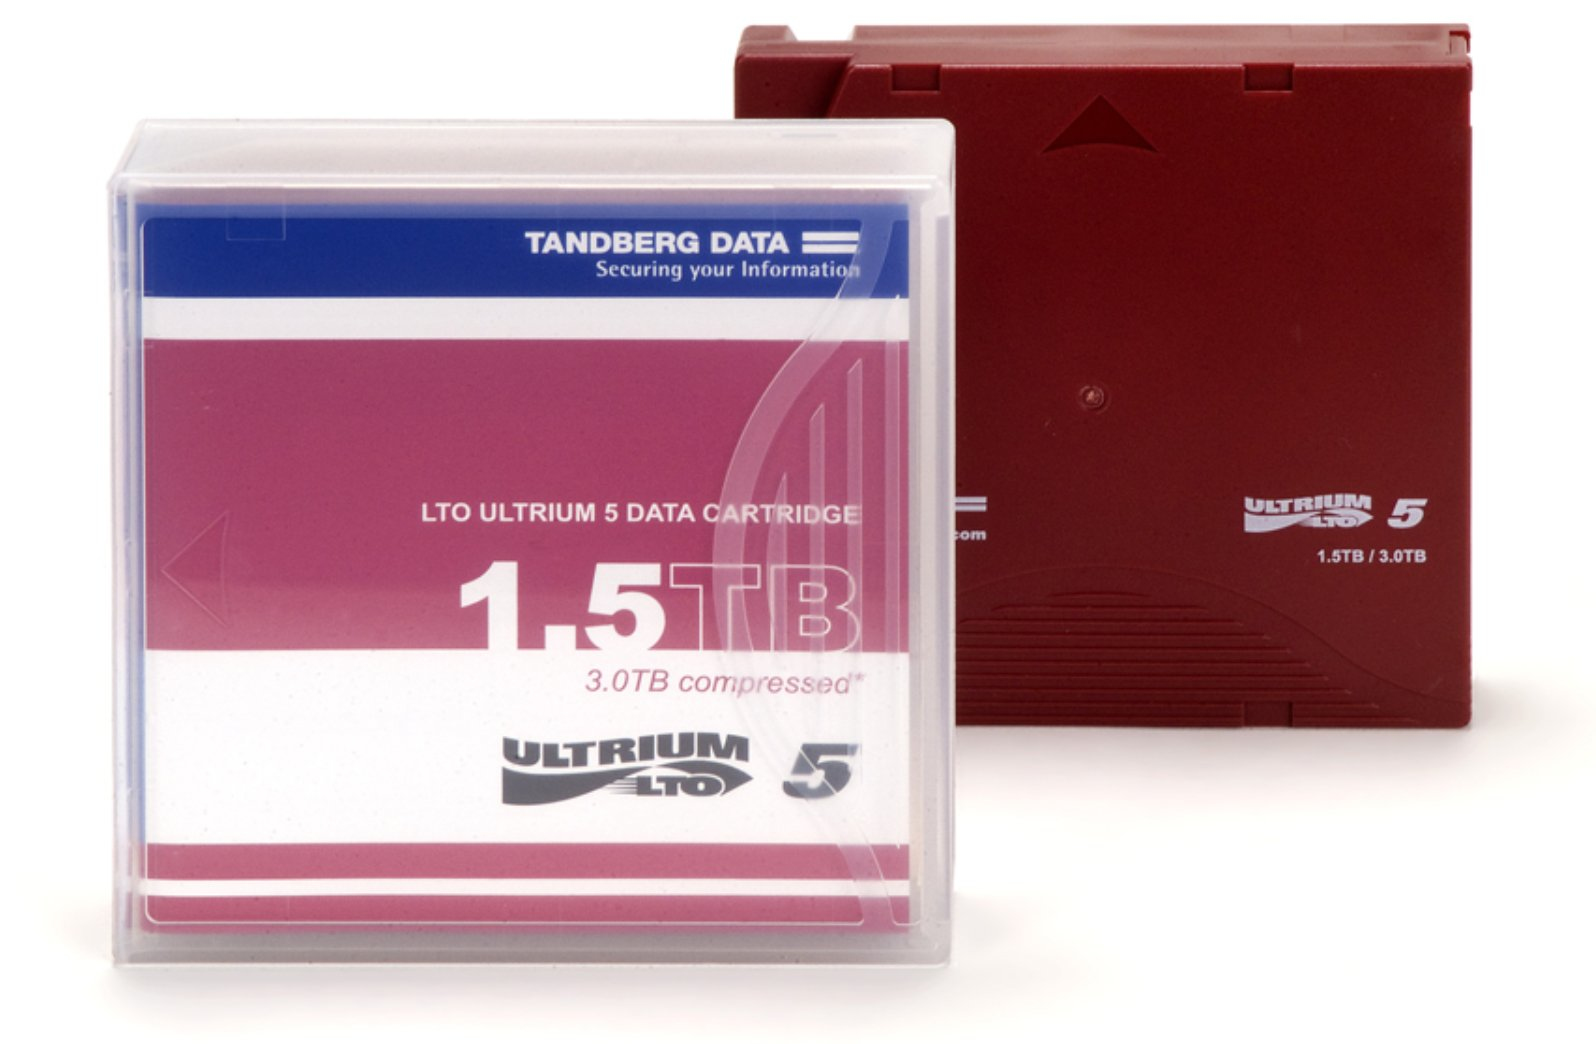 Tandberg Data LTO Ultrium 5 433955